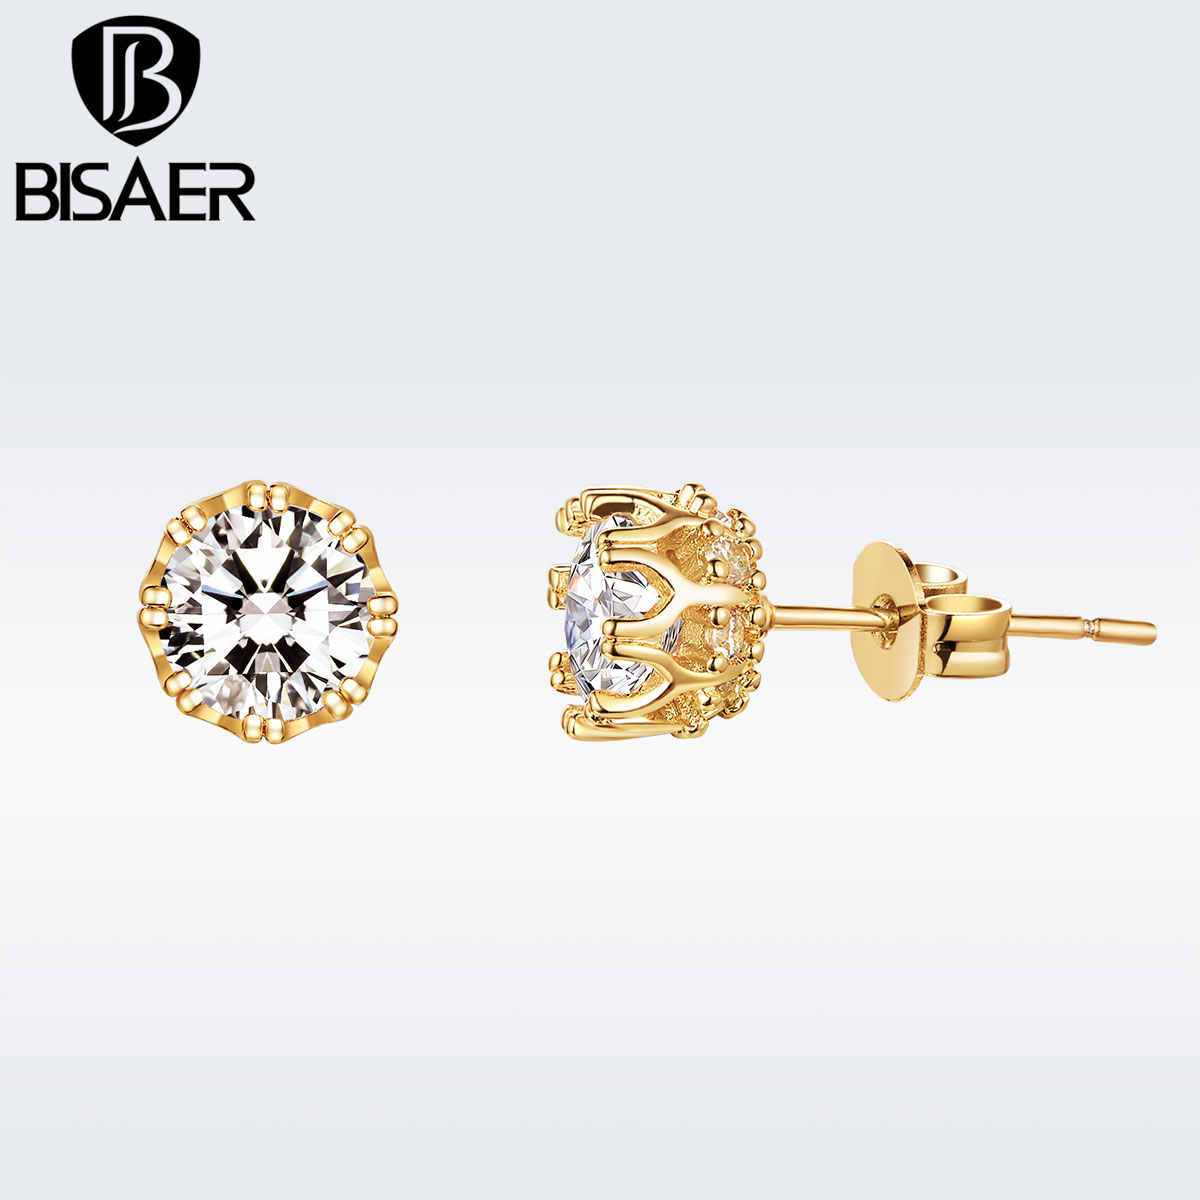 BISAER Clear CZ Gold Color Vintage Stud Earrings for Women Wedding Jewelry Bijoux GSE129